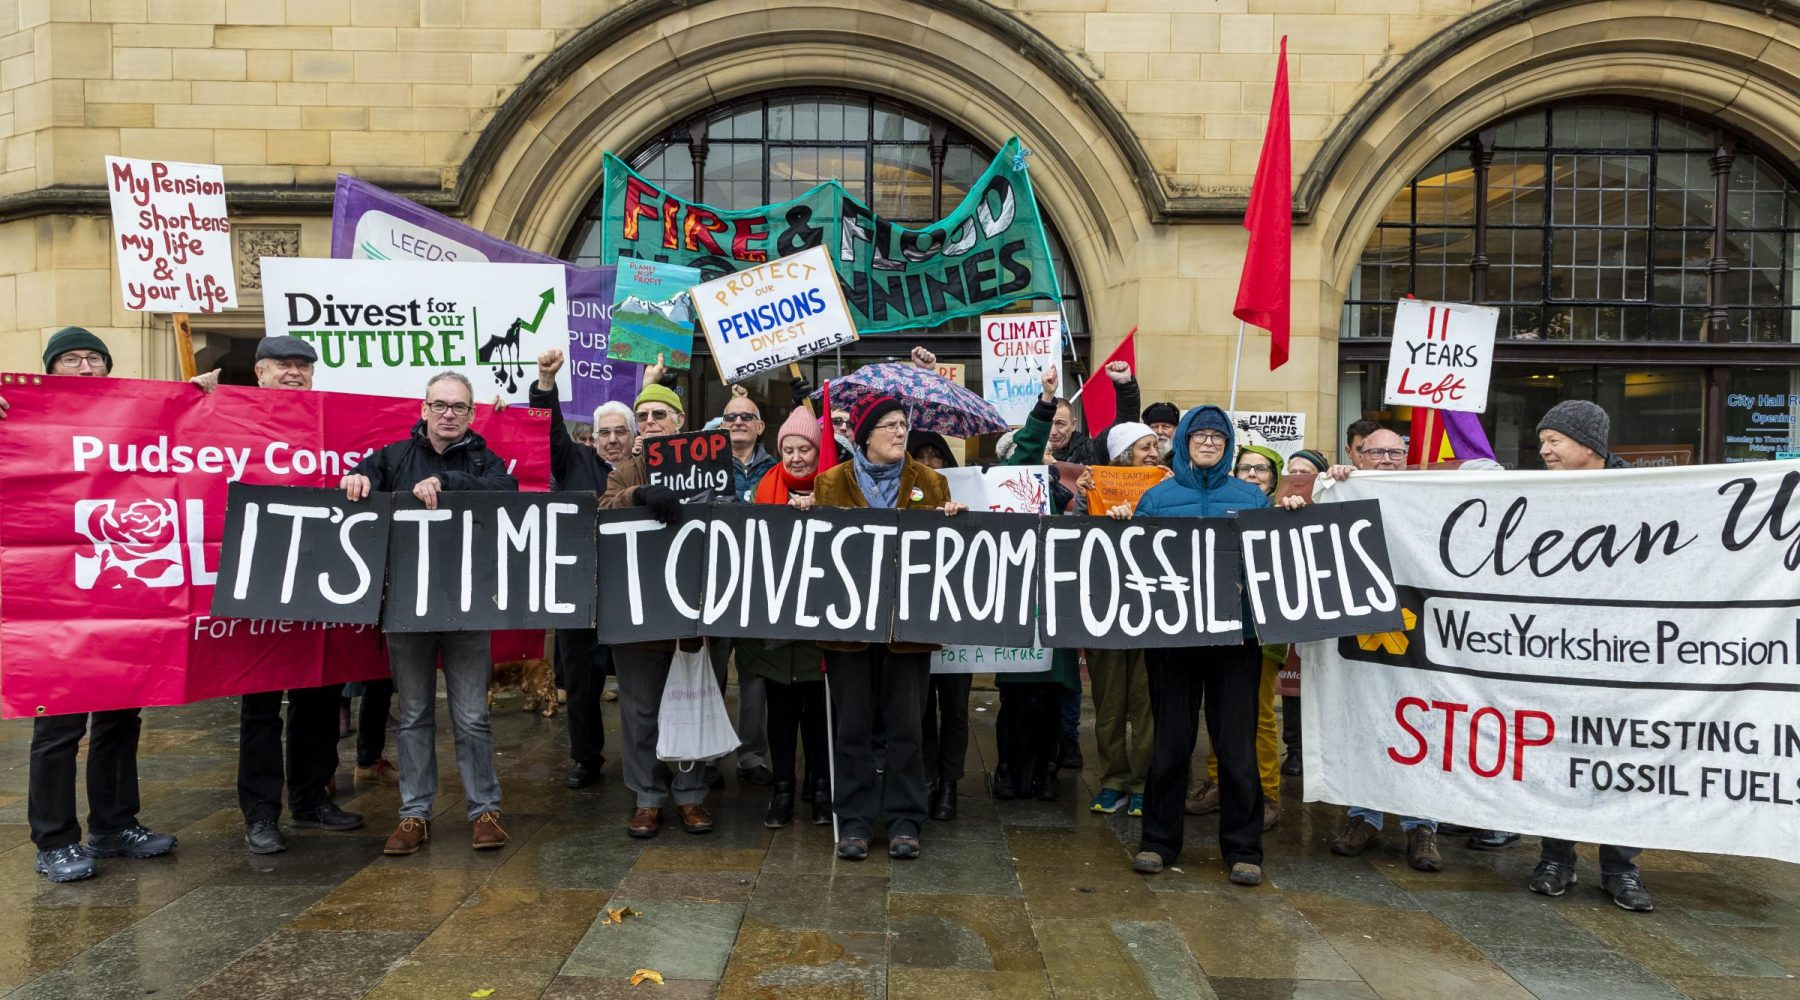 Protesters in Bradford call for West Yorkshire Pension…